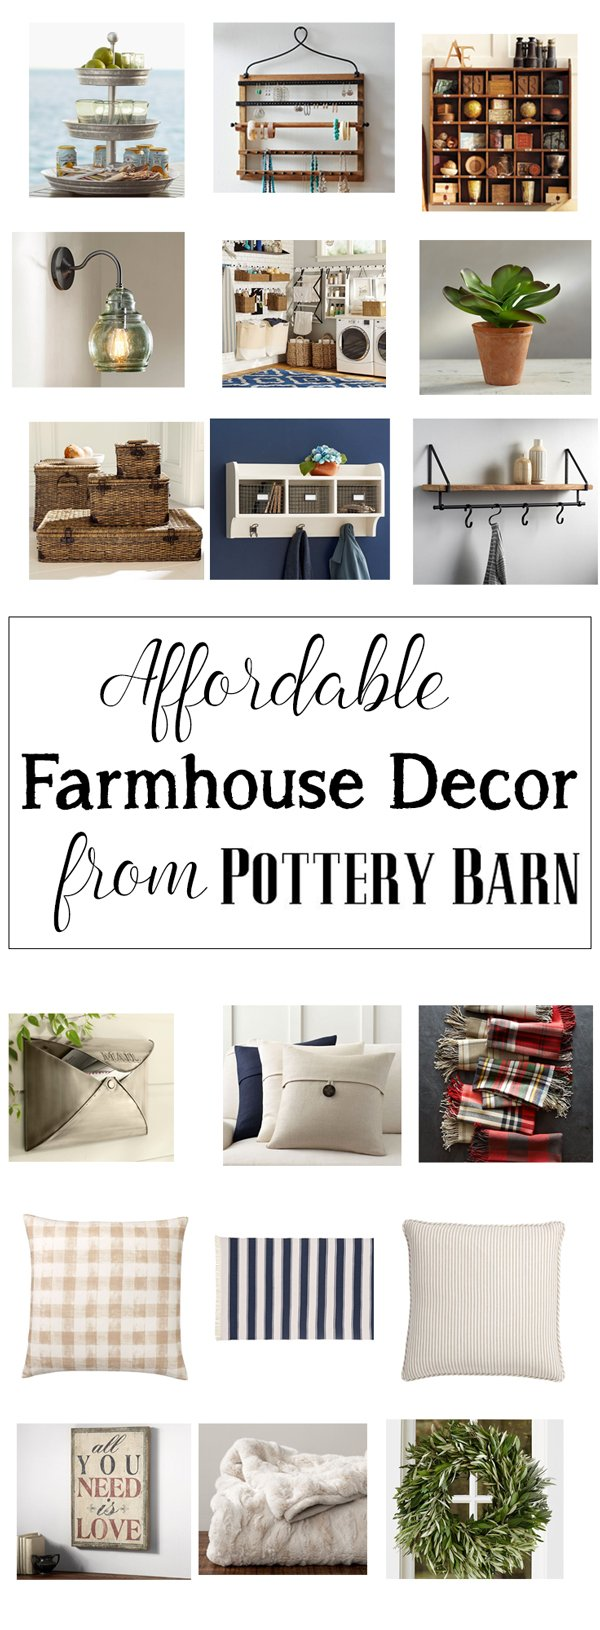 Affordable farmhouse decor from pottery barn for Cheap home decor websites